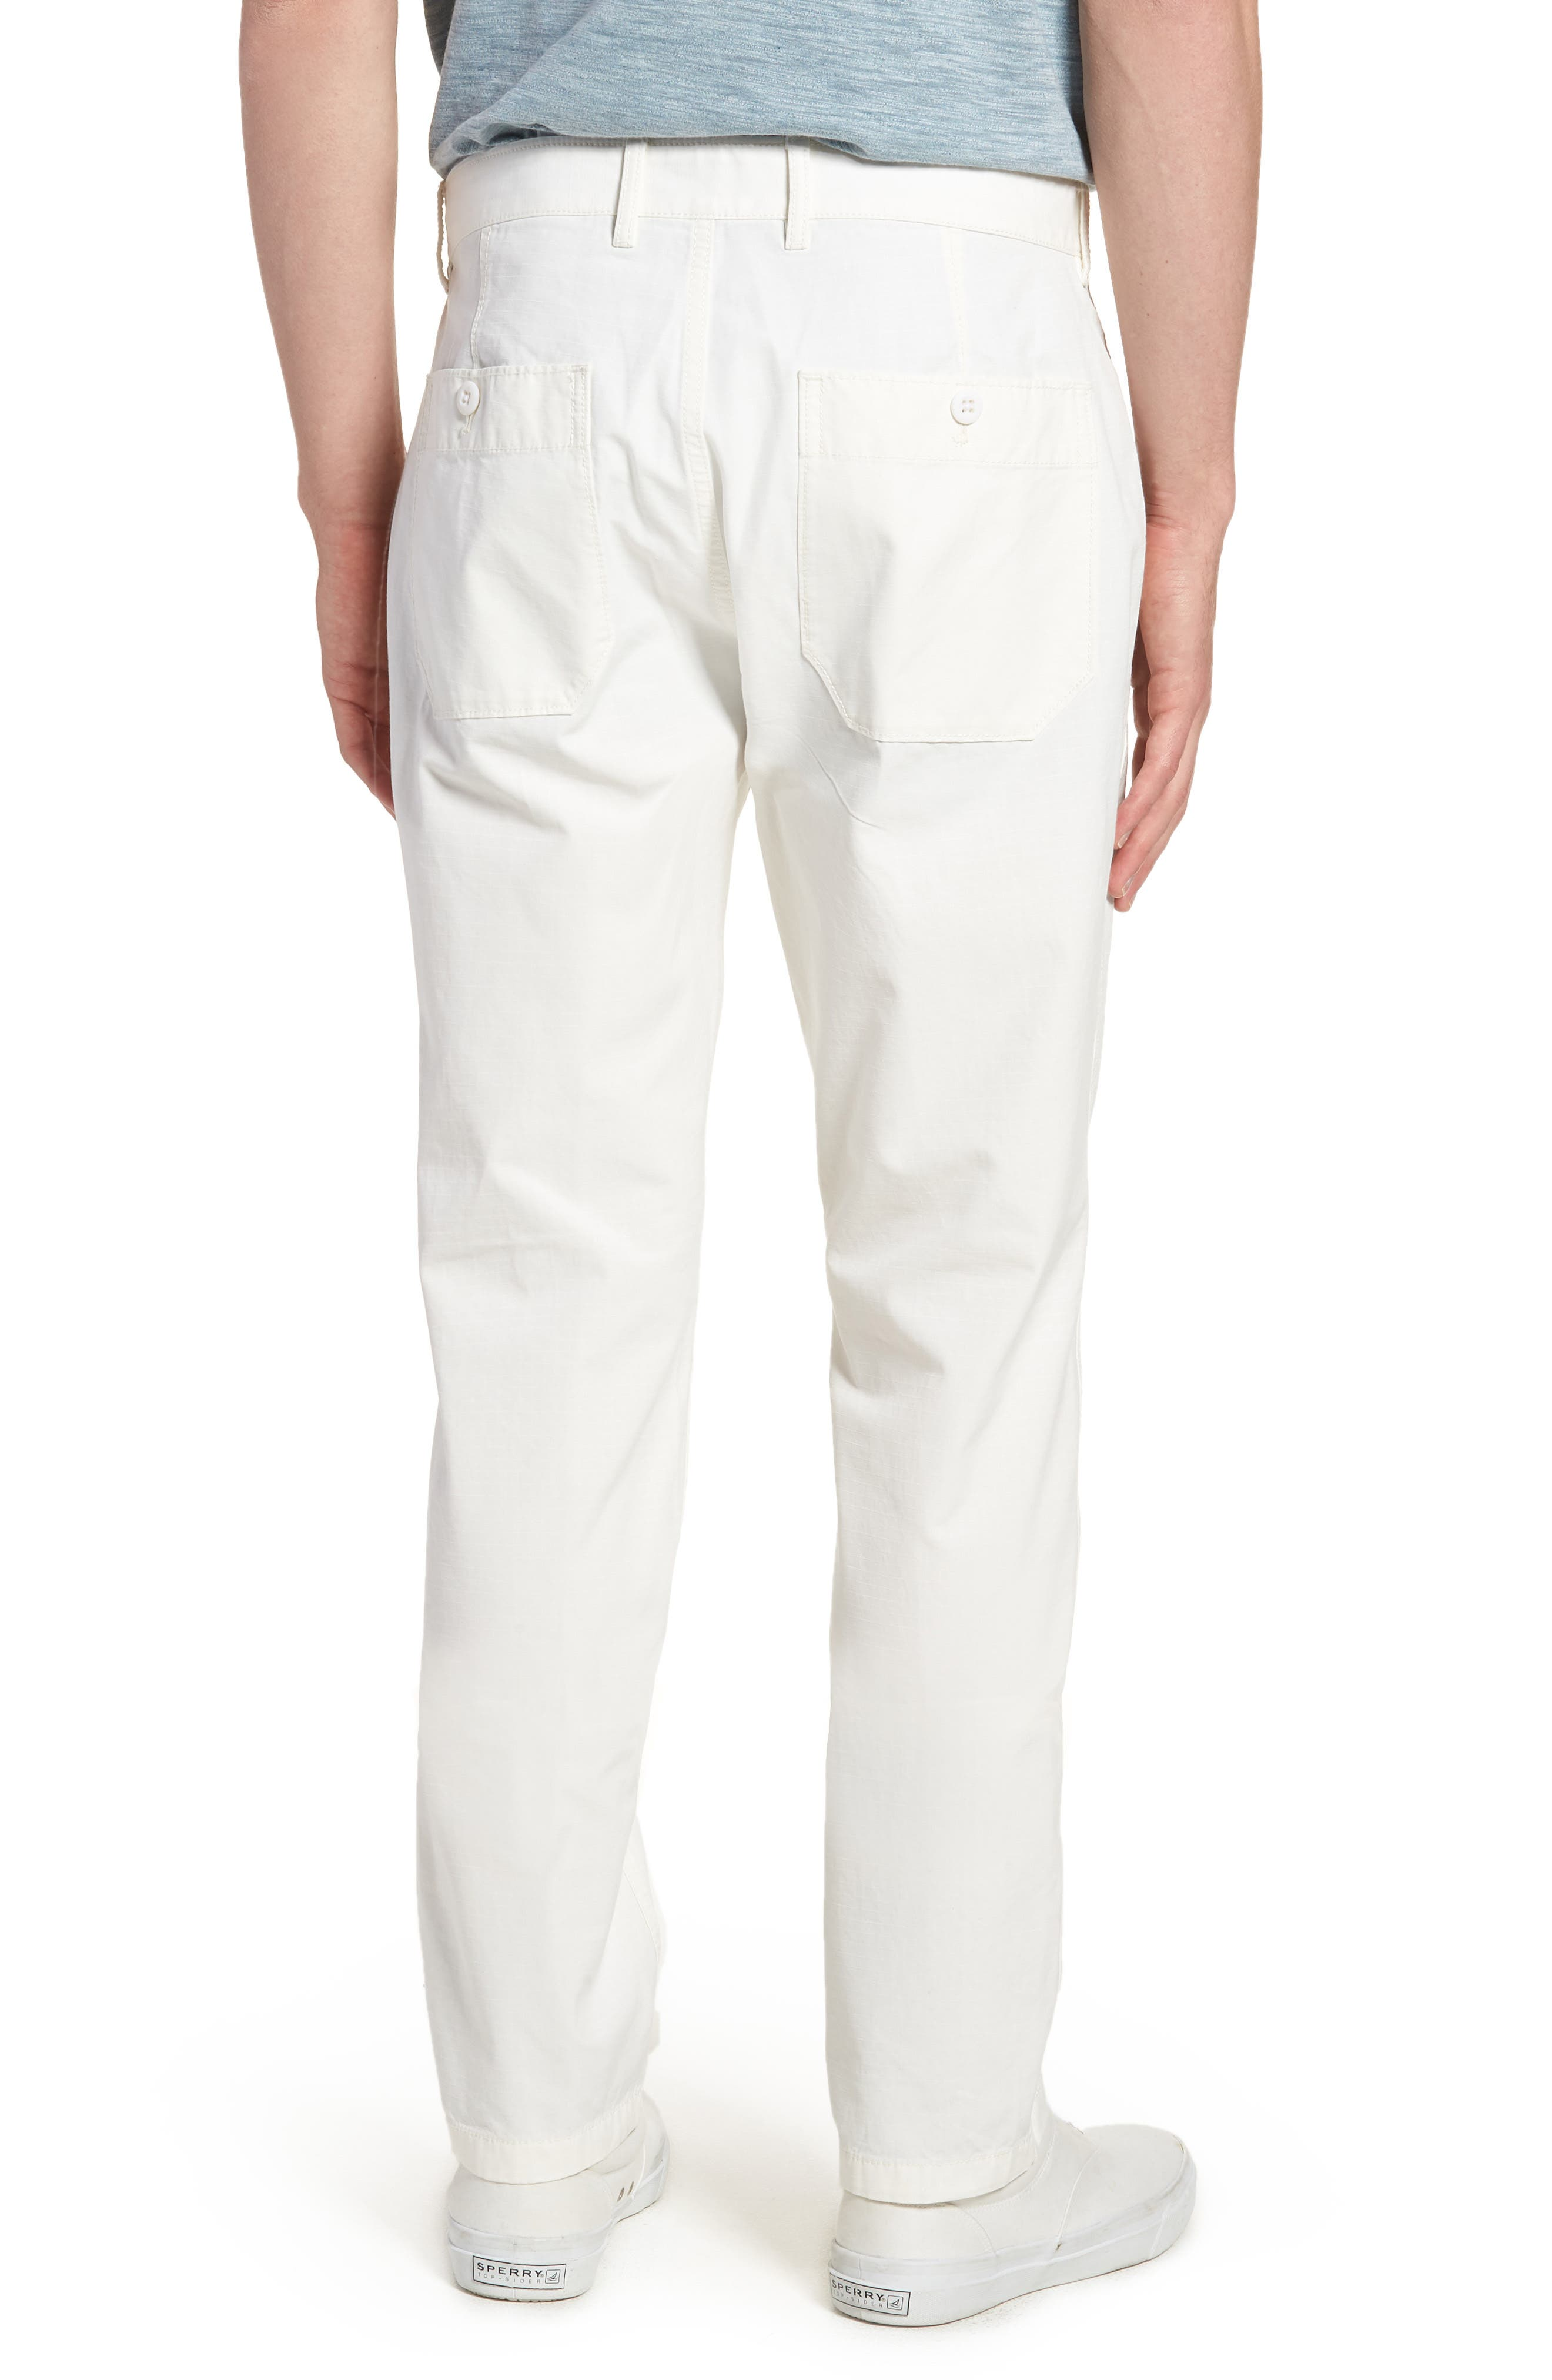 770 Straight Fit Ripstop Camp Pants,                             Alternate thumbnail 2, color,                             Marine Salt